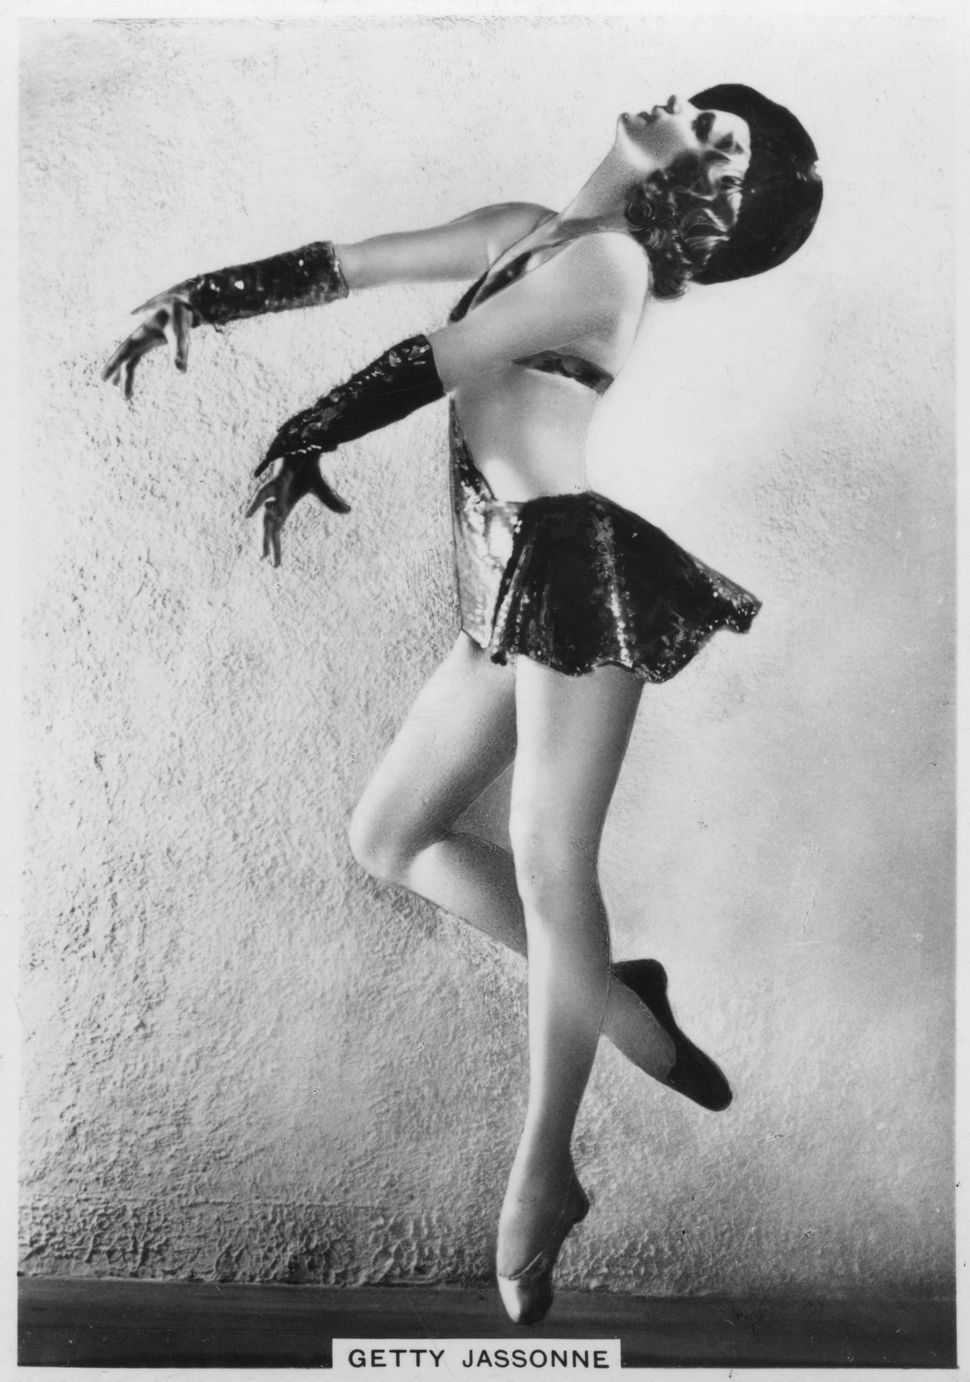 A pin-up portrait of Getty Jassonne, French ballet dancer, captured between 1936 and 1939. This appeared on a cigarette card